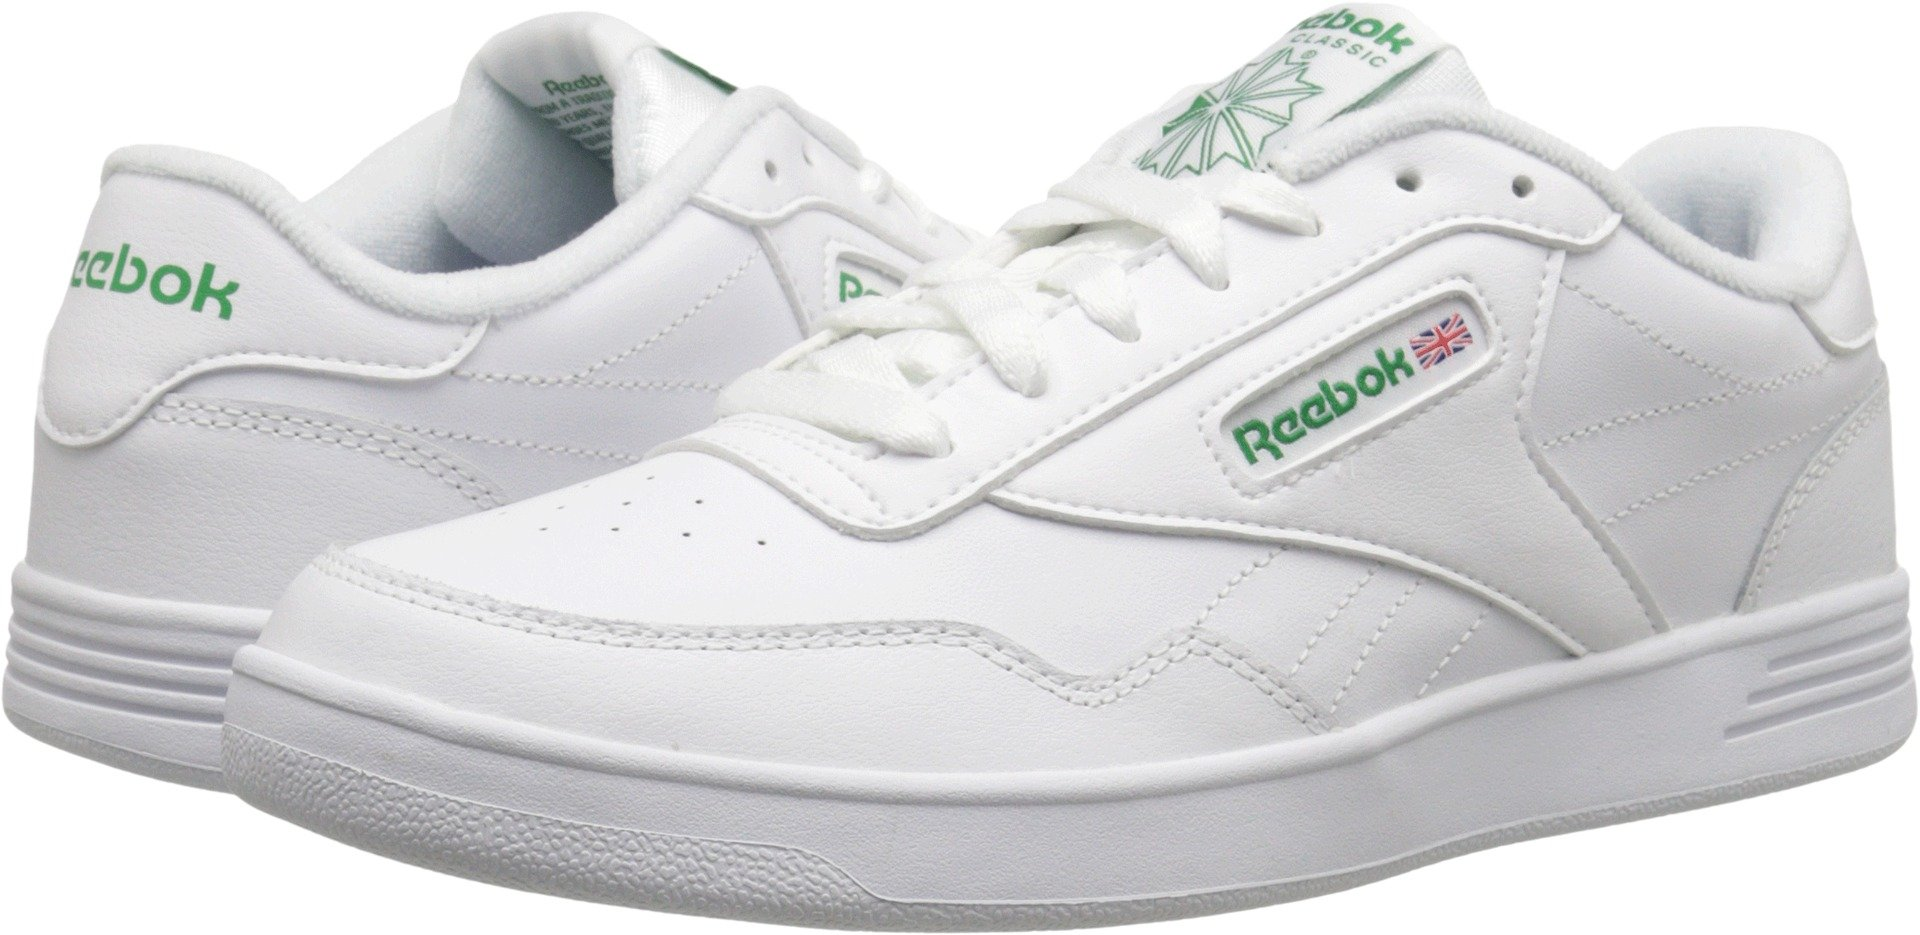 Reebok Men's Club MEMT Sneaker White/Glen Green 14 4E US